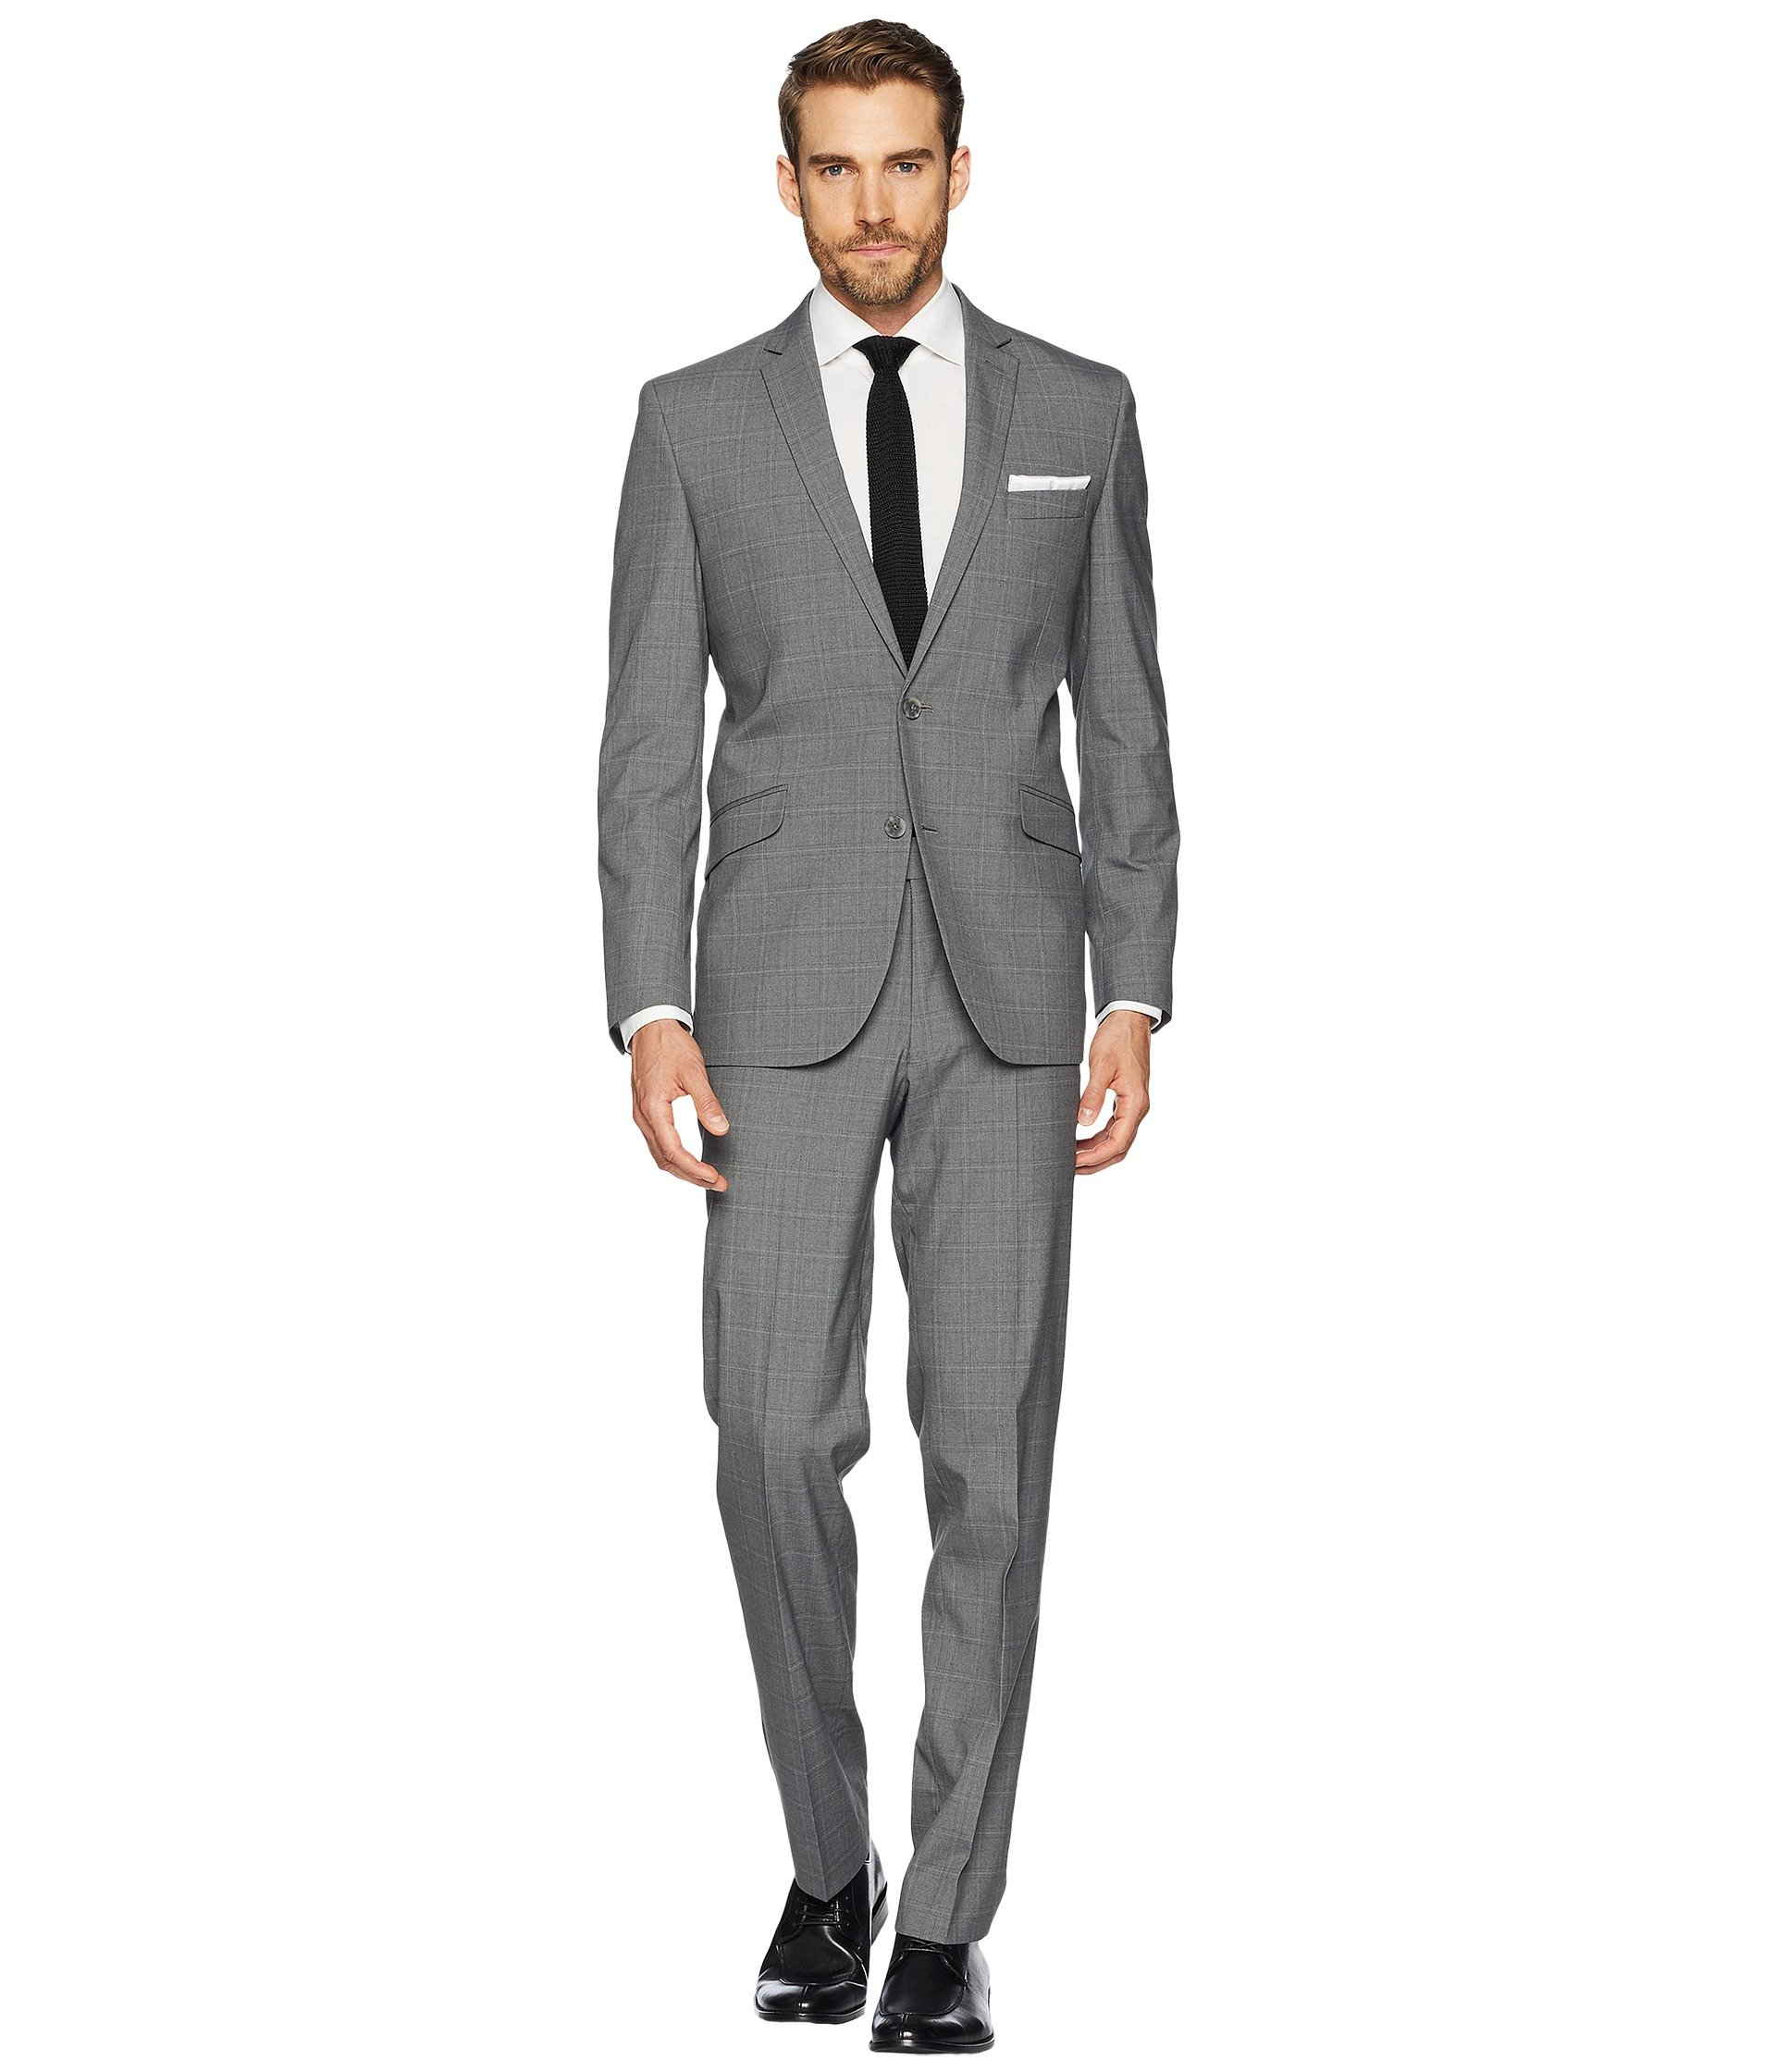 Kenneth Cole REACTION Men's 32'' Finished Bottom Suit, Gray Plaid, 46R